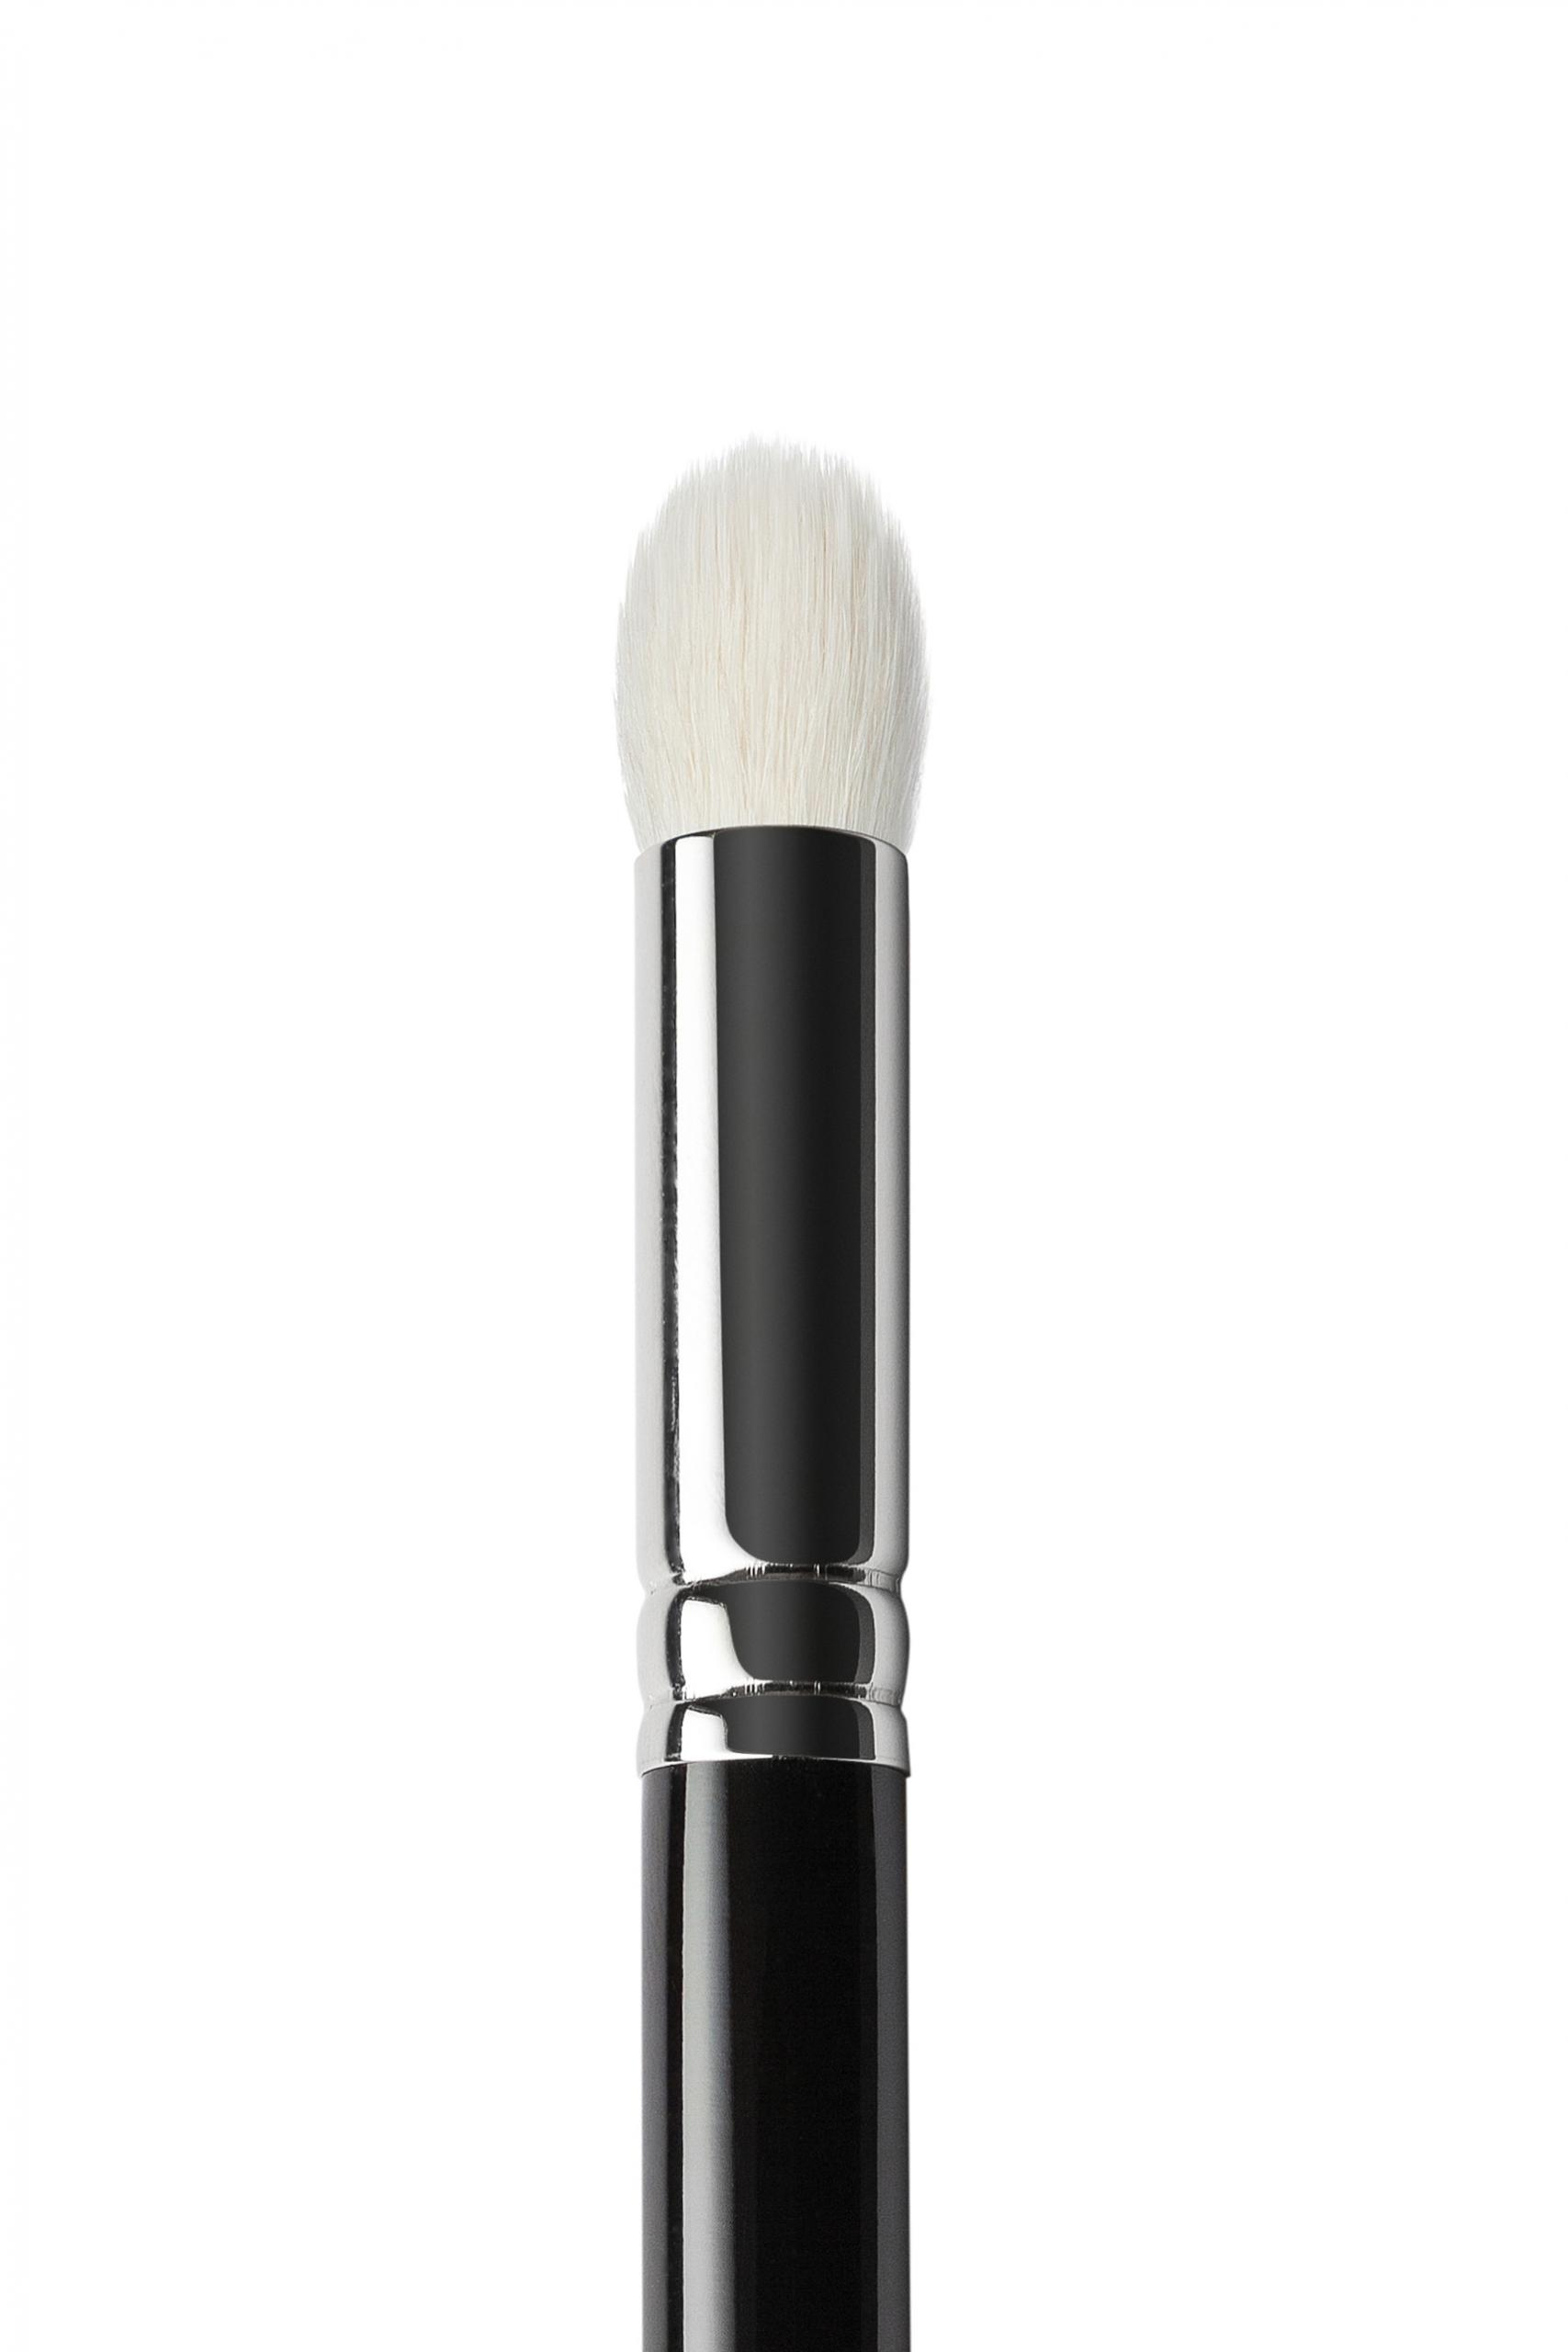 Bristles brushes for grinding pores Annbeauty A6